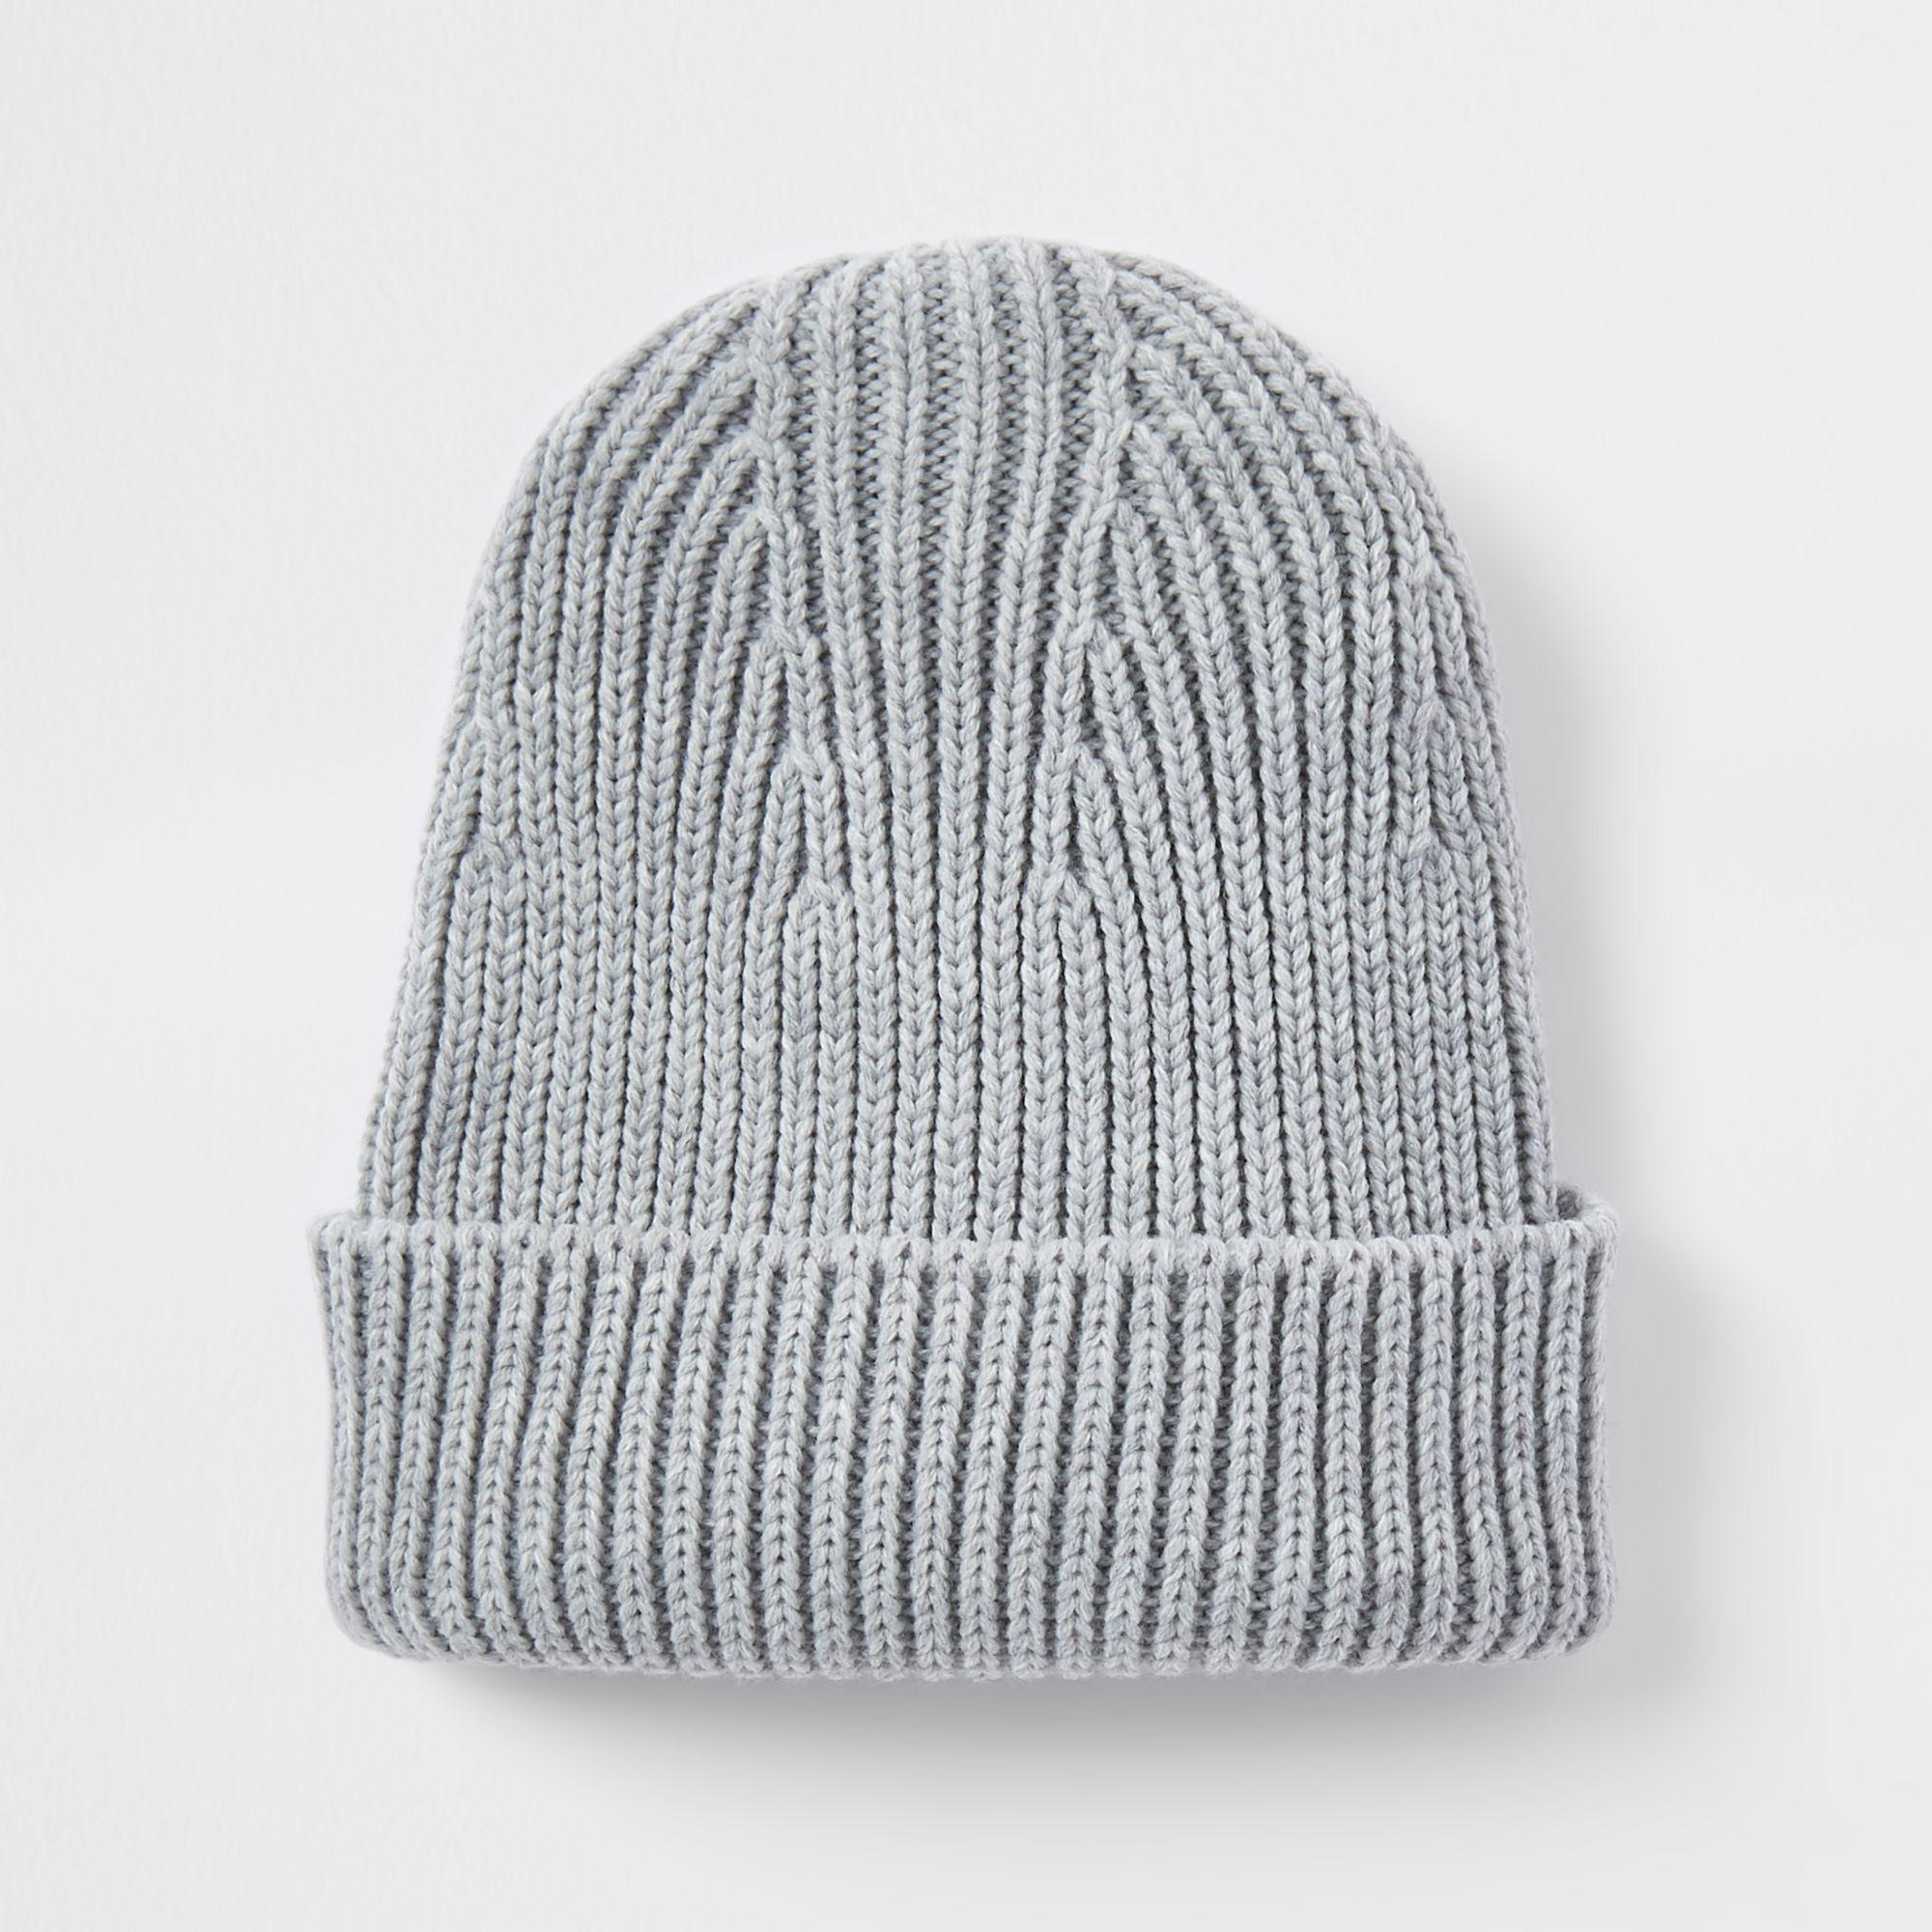 a5faf197554 River Island Fisherman Knit Beanie Hat in Gray for Men - Lyst